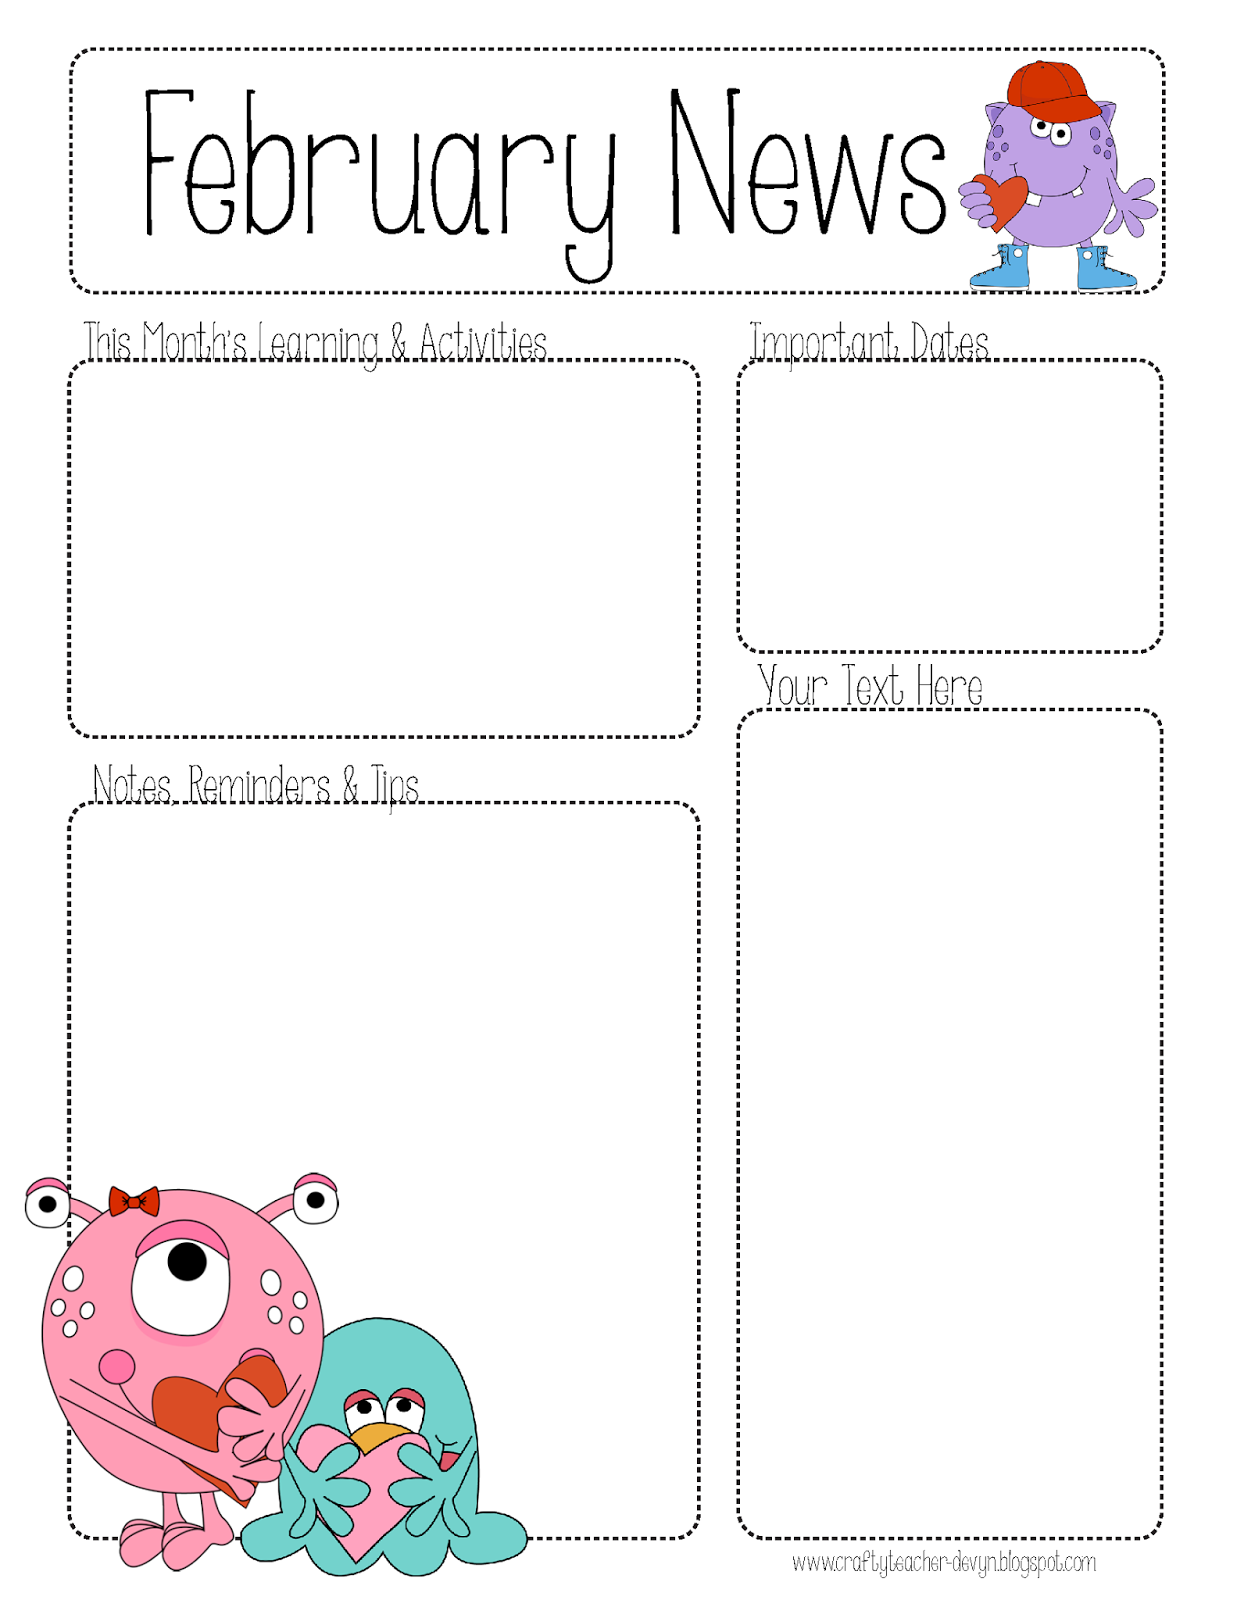 Preschool ValentineS Day February Newsletter Template